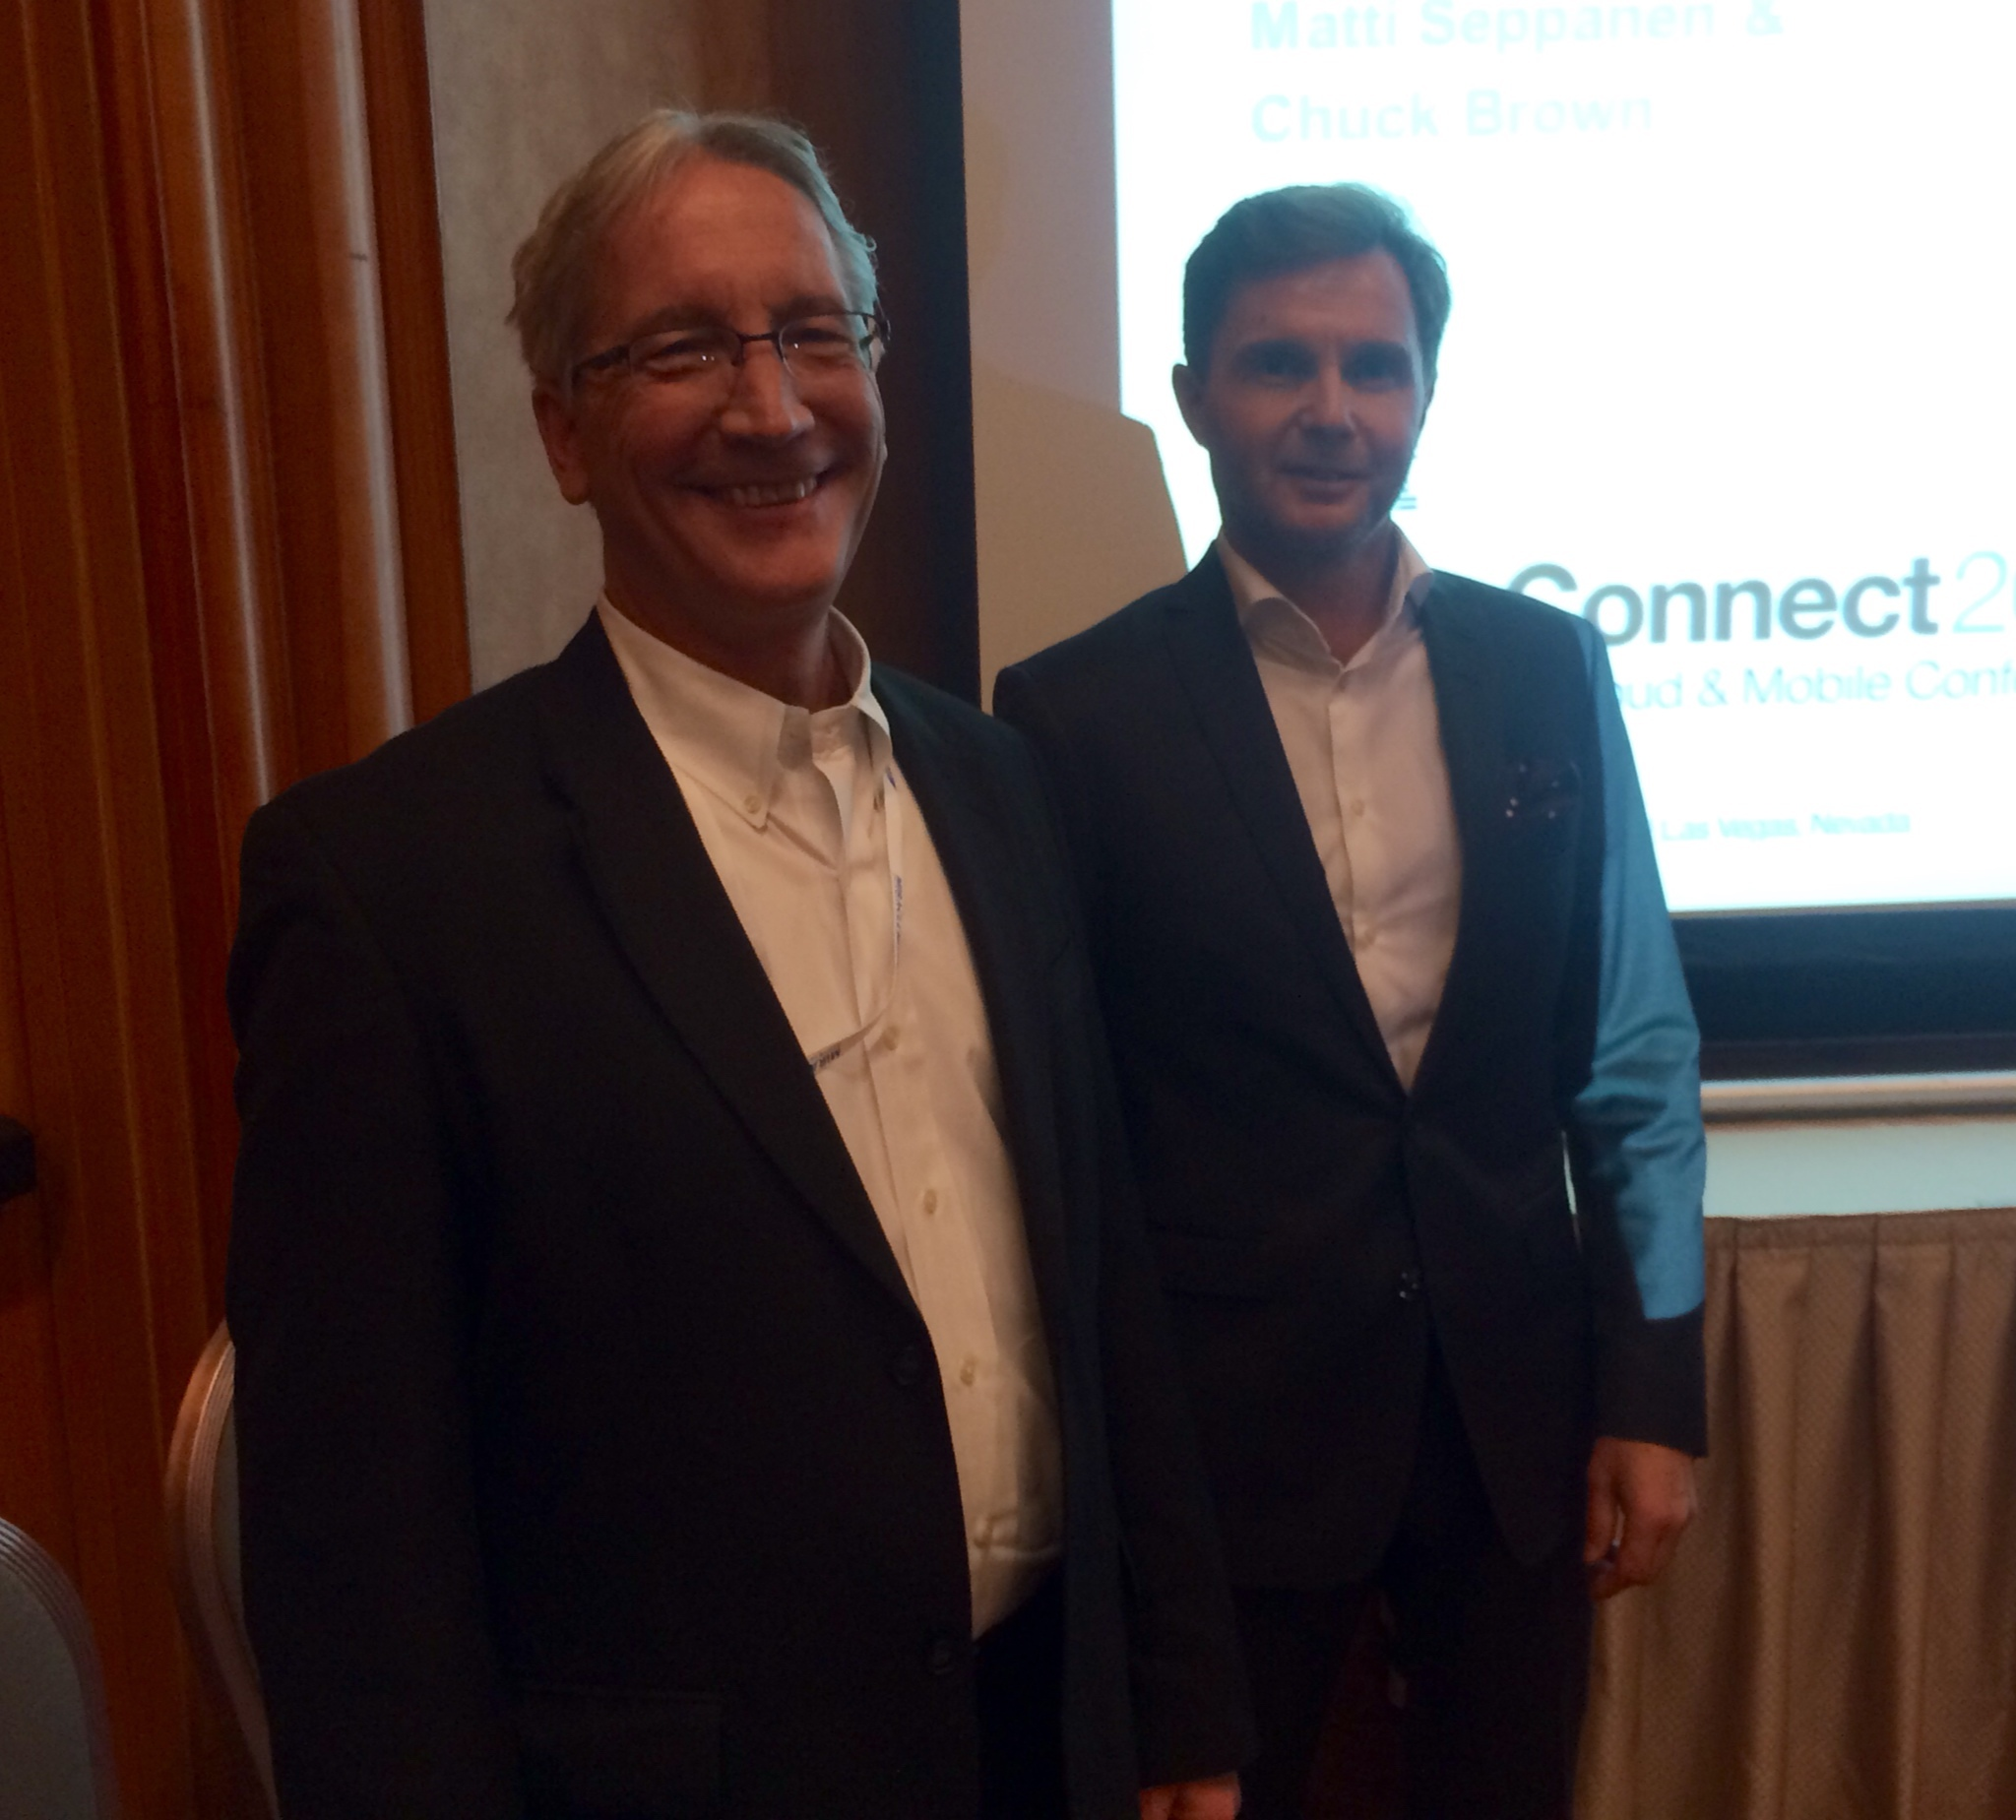 Chuck Brown of IBM and Matti Seppänen of Enfo discuss endpoint management at IBM InterConnect 2015